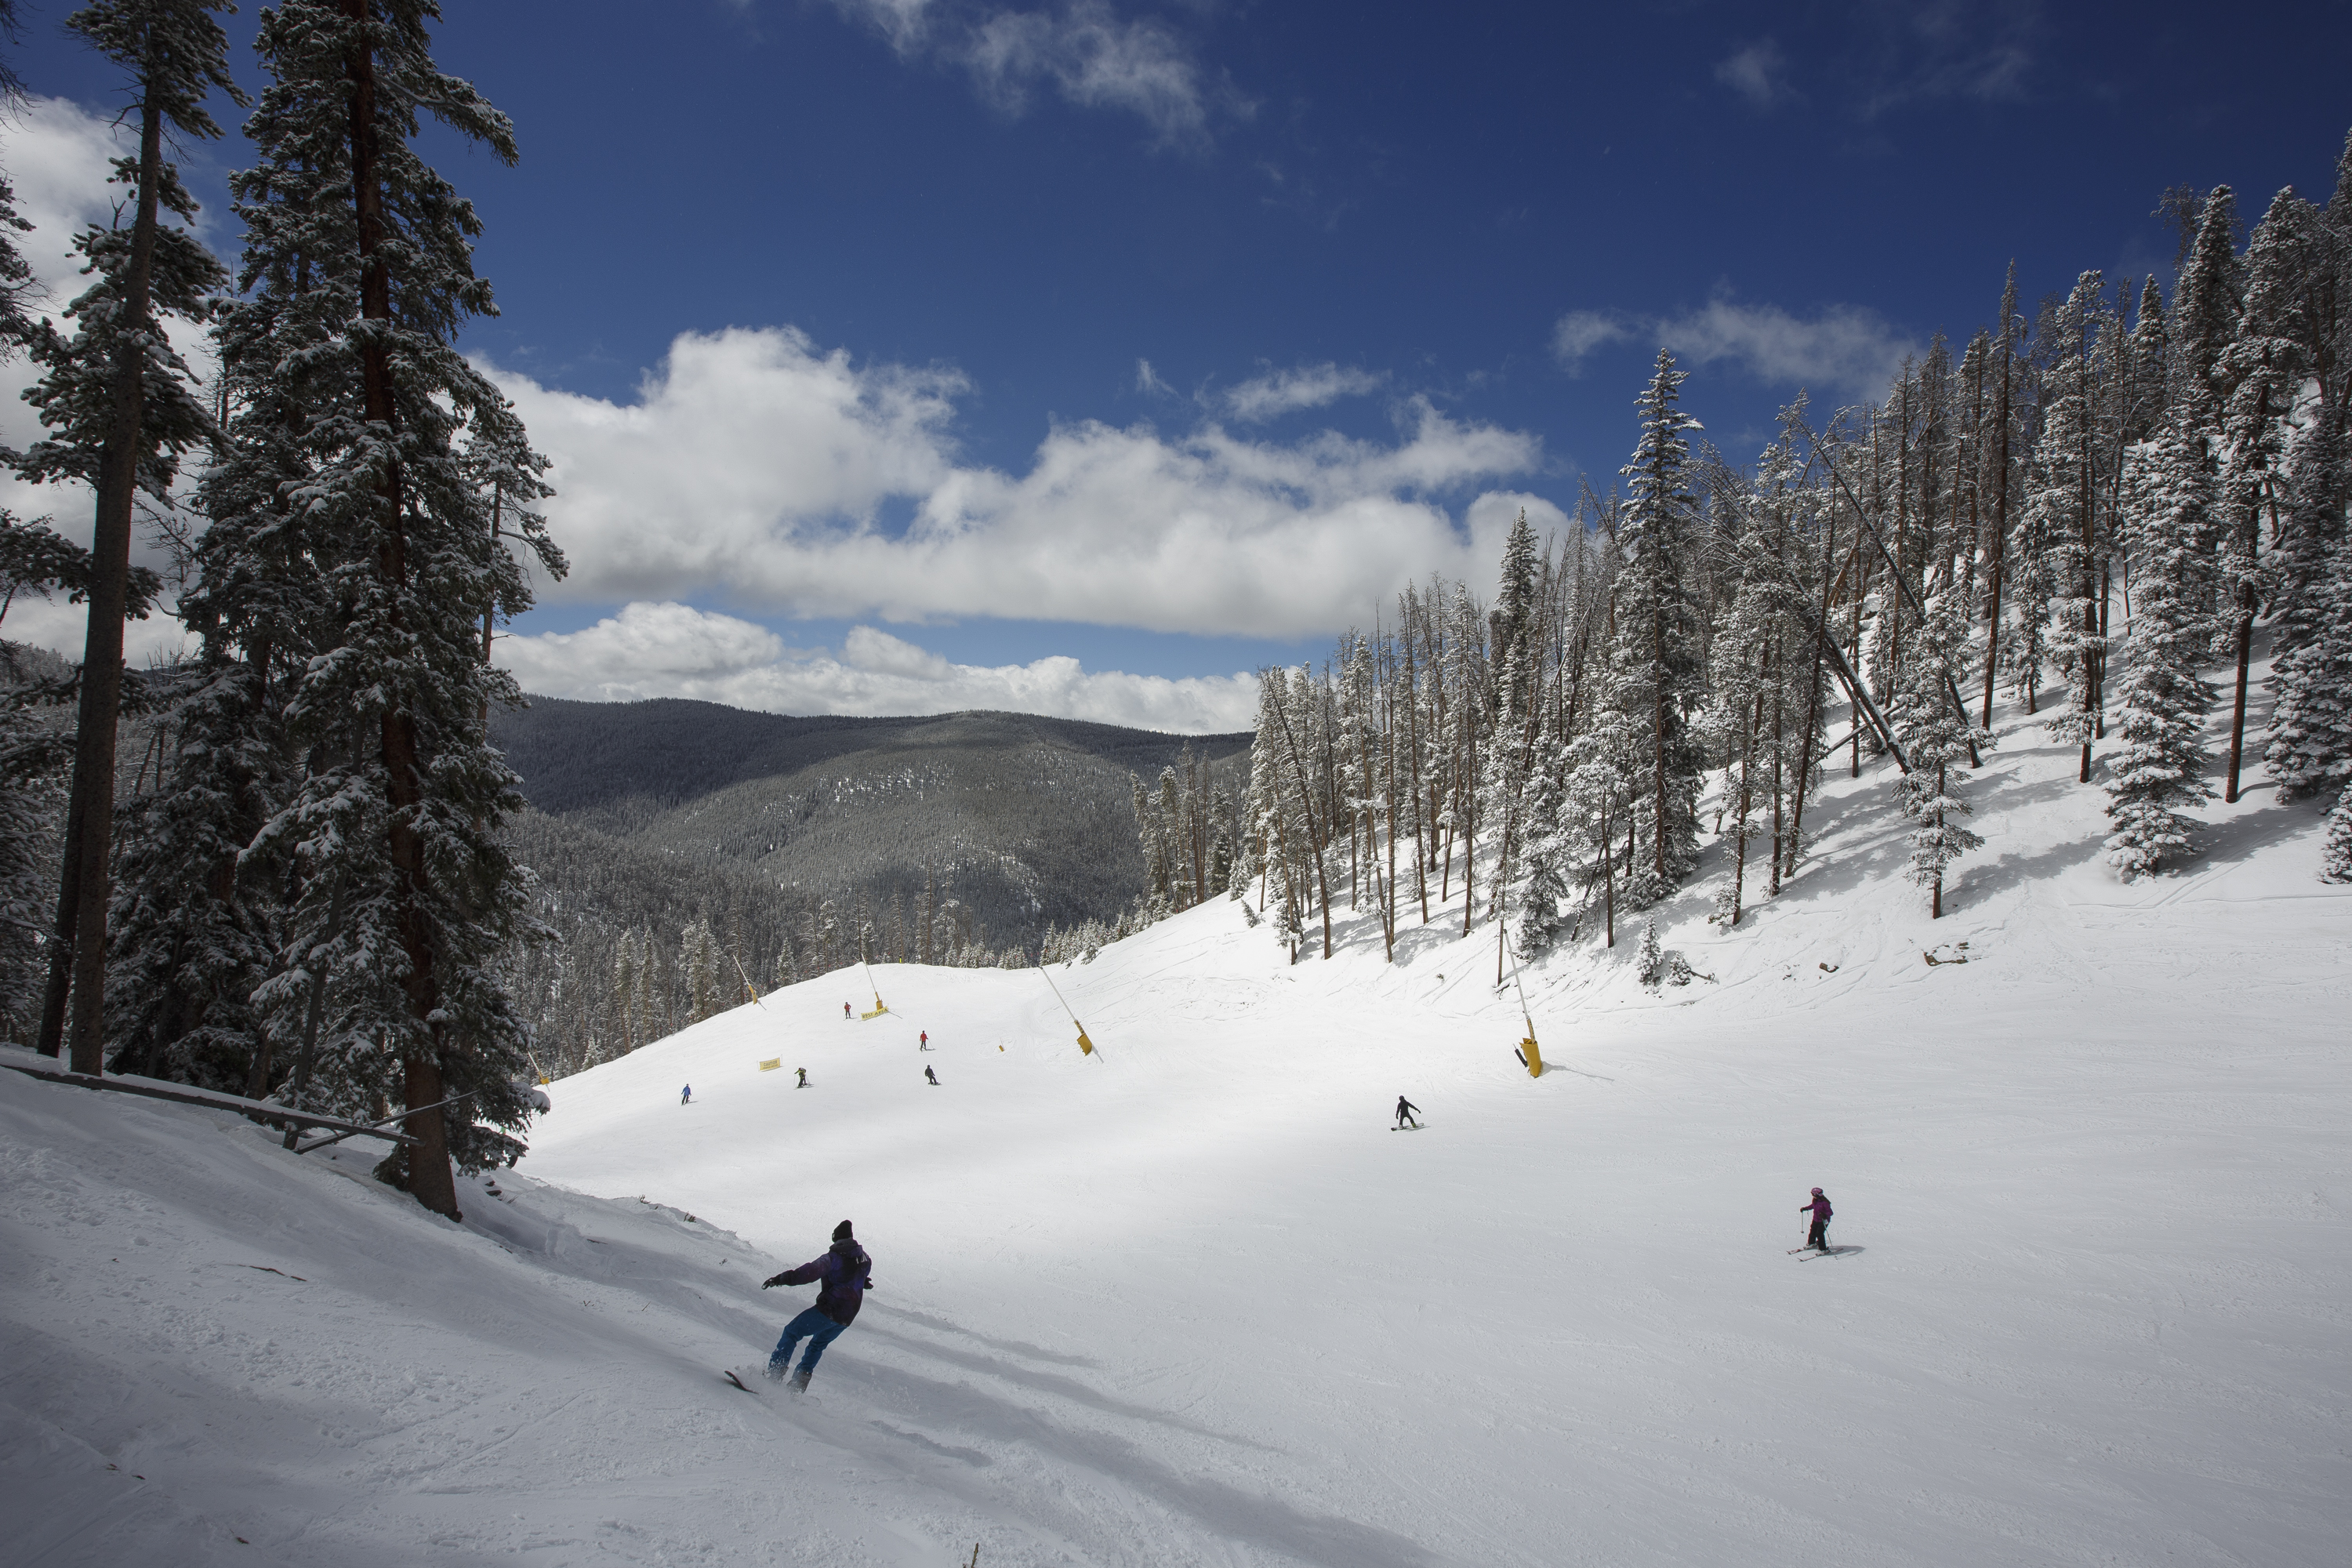 Whiteout, Part 1: Uncovering the human toll of Colorado's ski industry